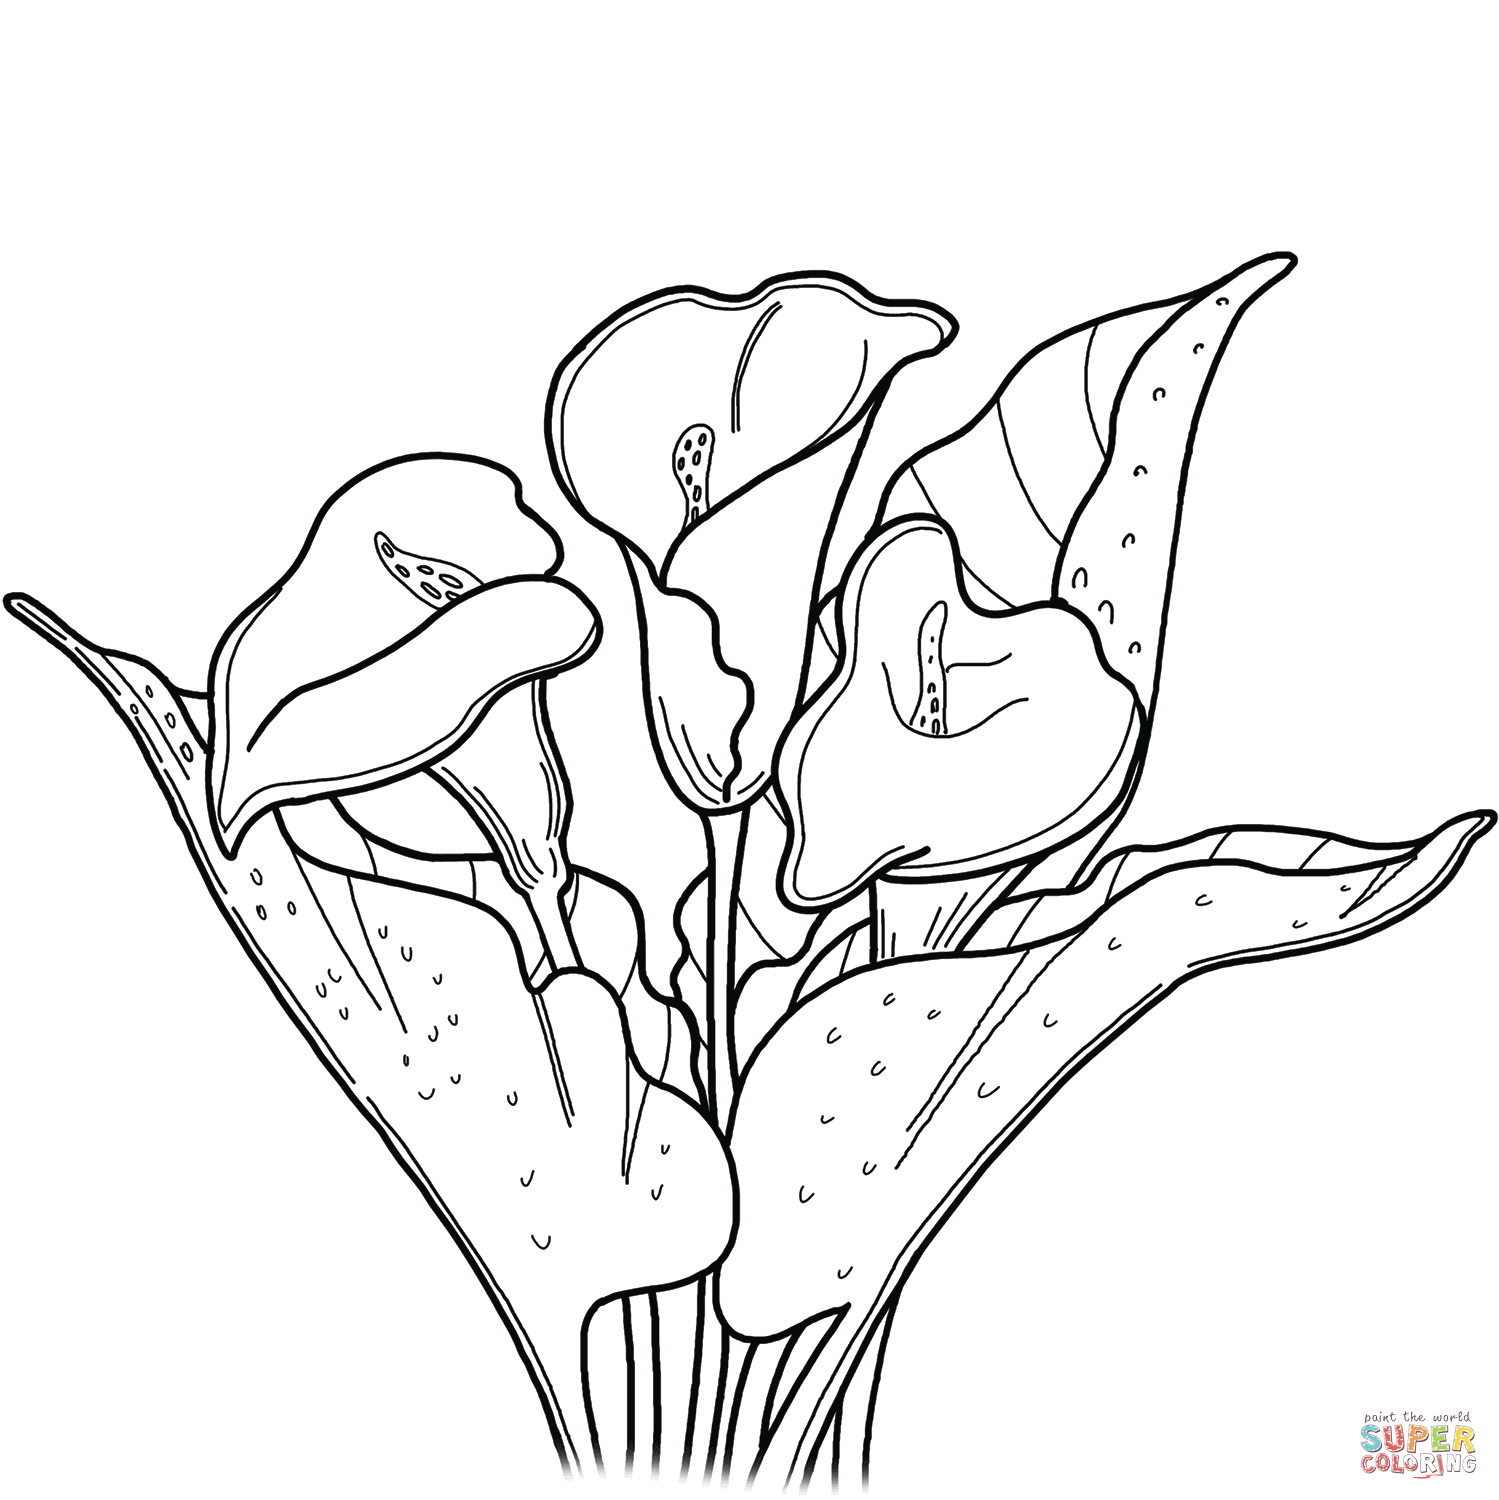 Calla Lily coloring page Free Printable Coloring Pages